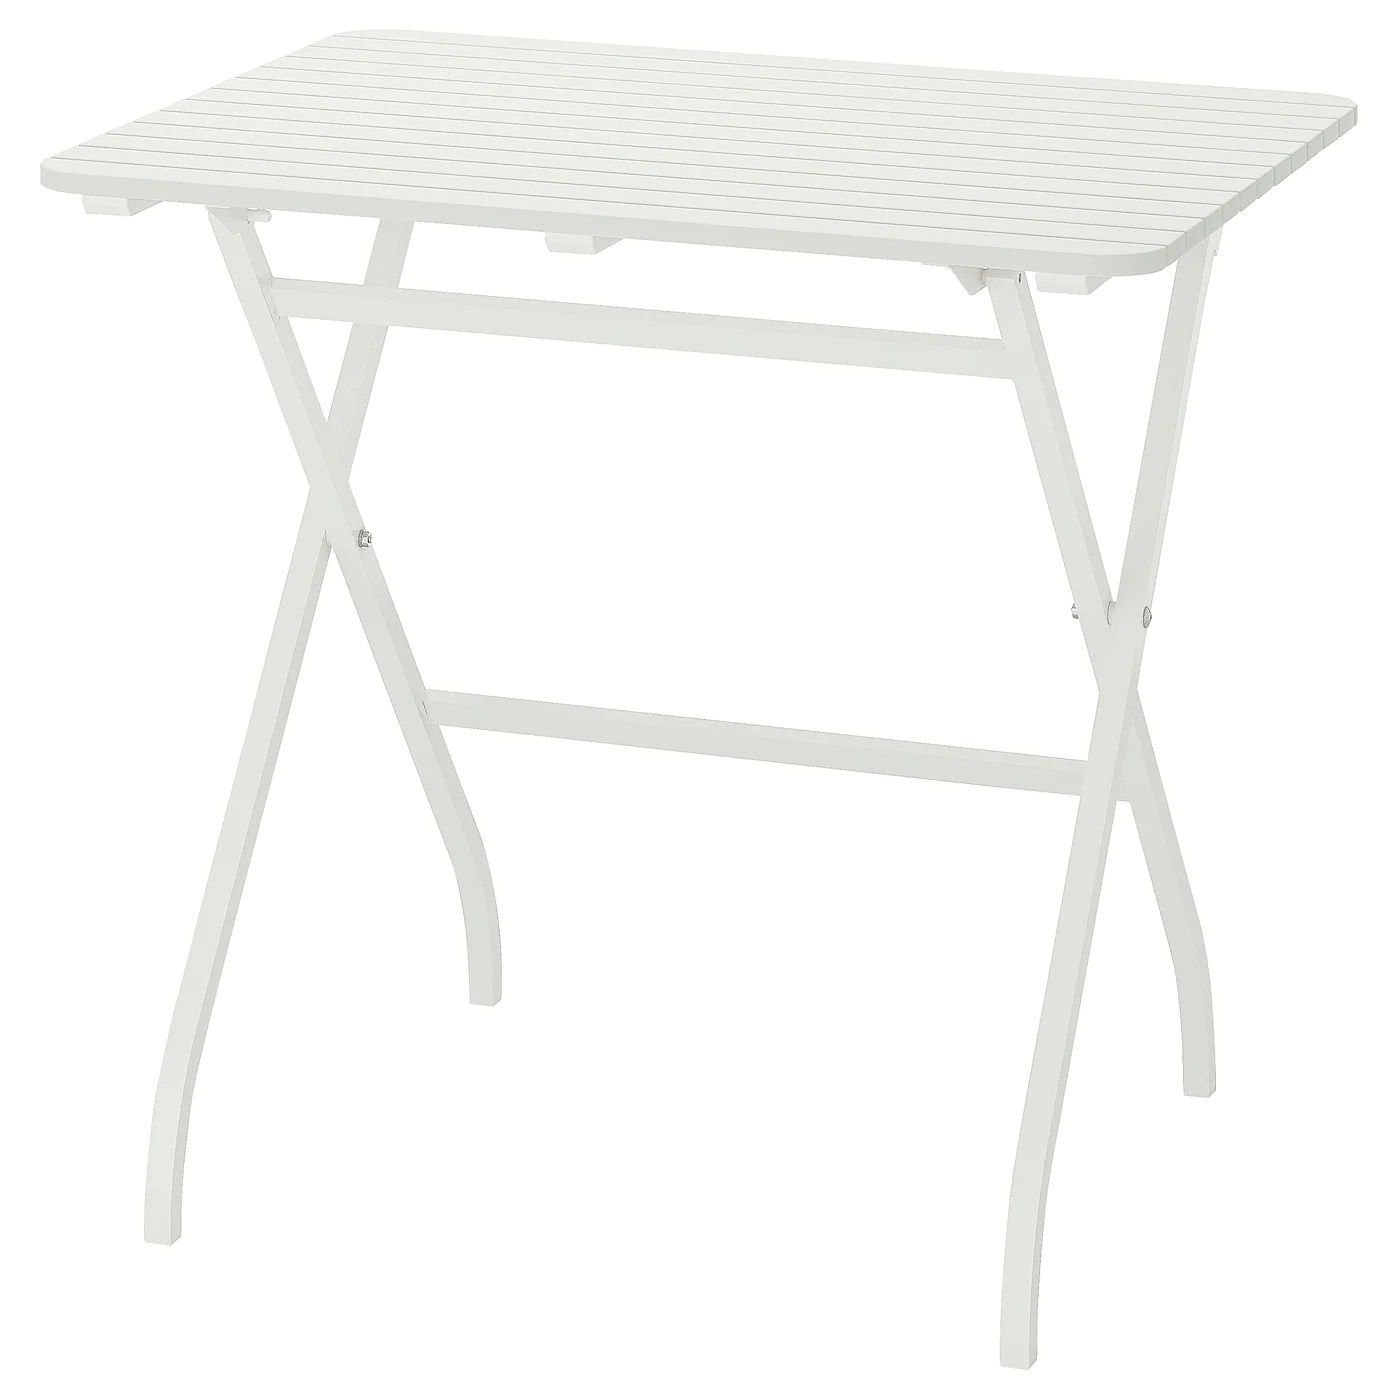 tables de jardin ikea suisse